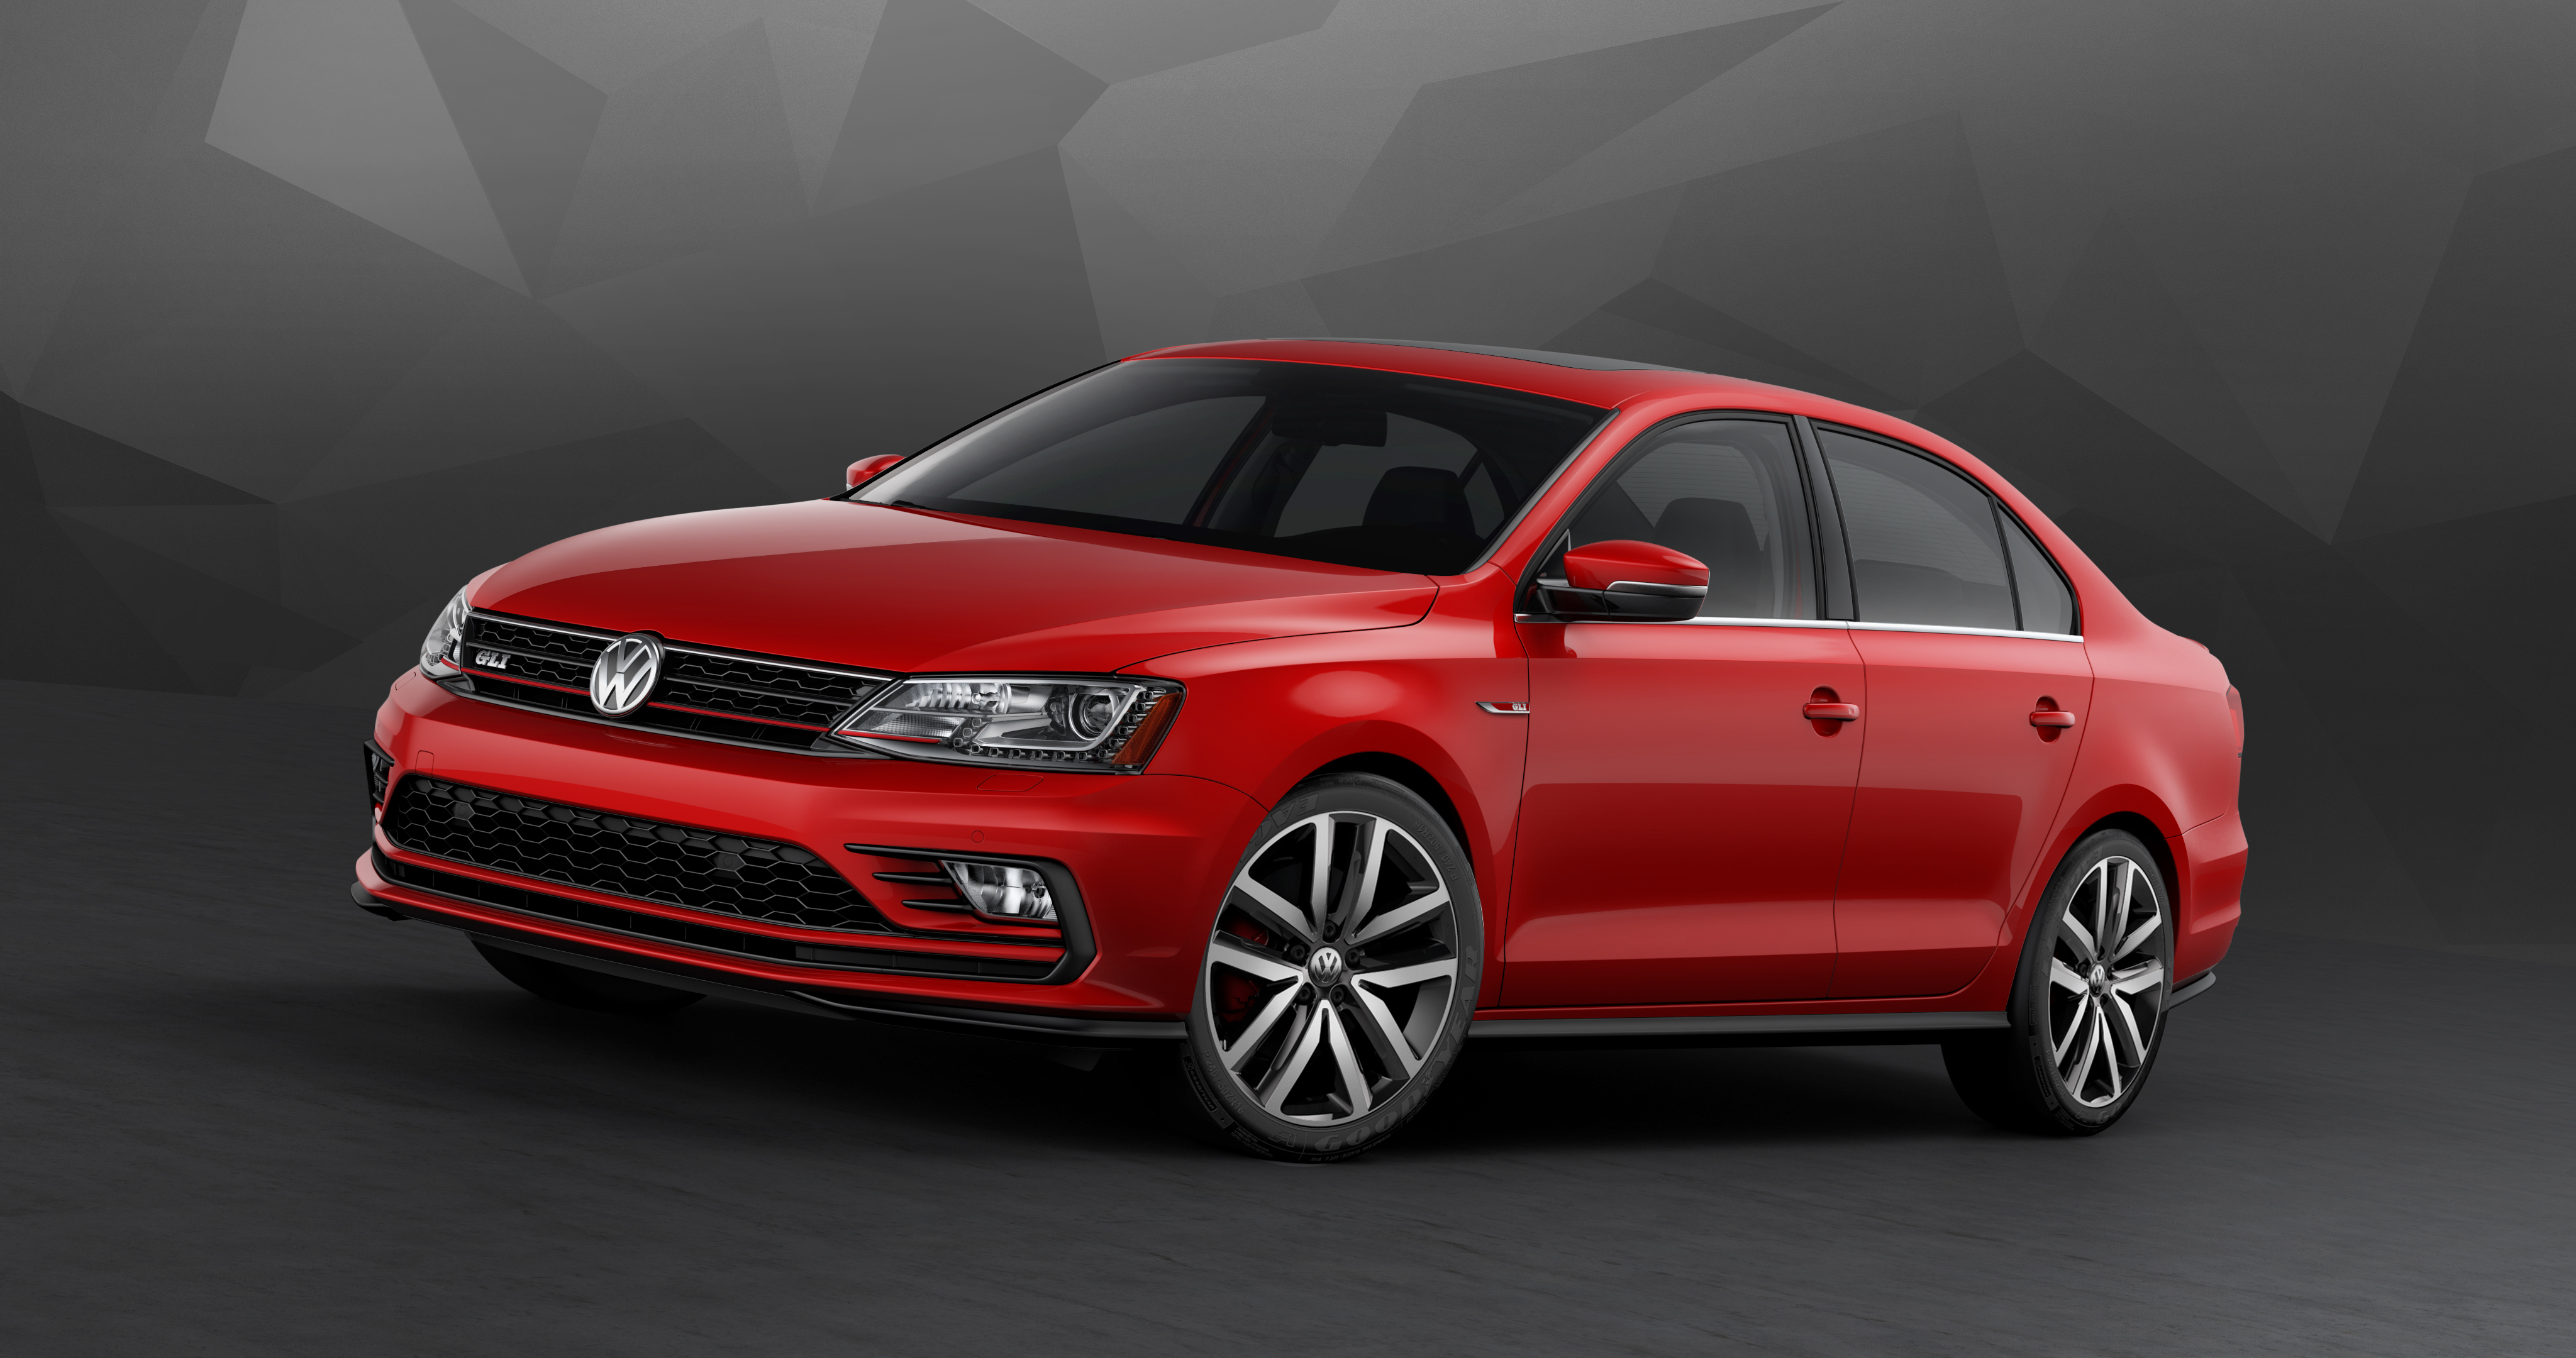 2016 Volkswagen Jetta offers variety of trim and engine choices -  Washington Times